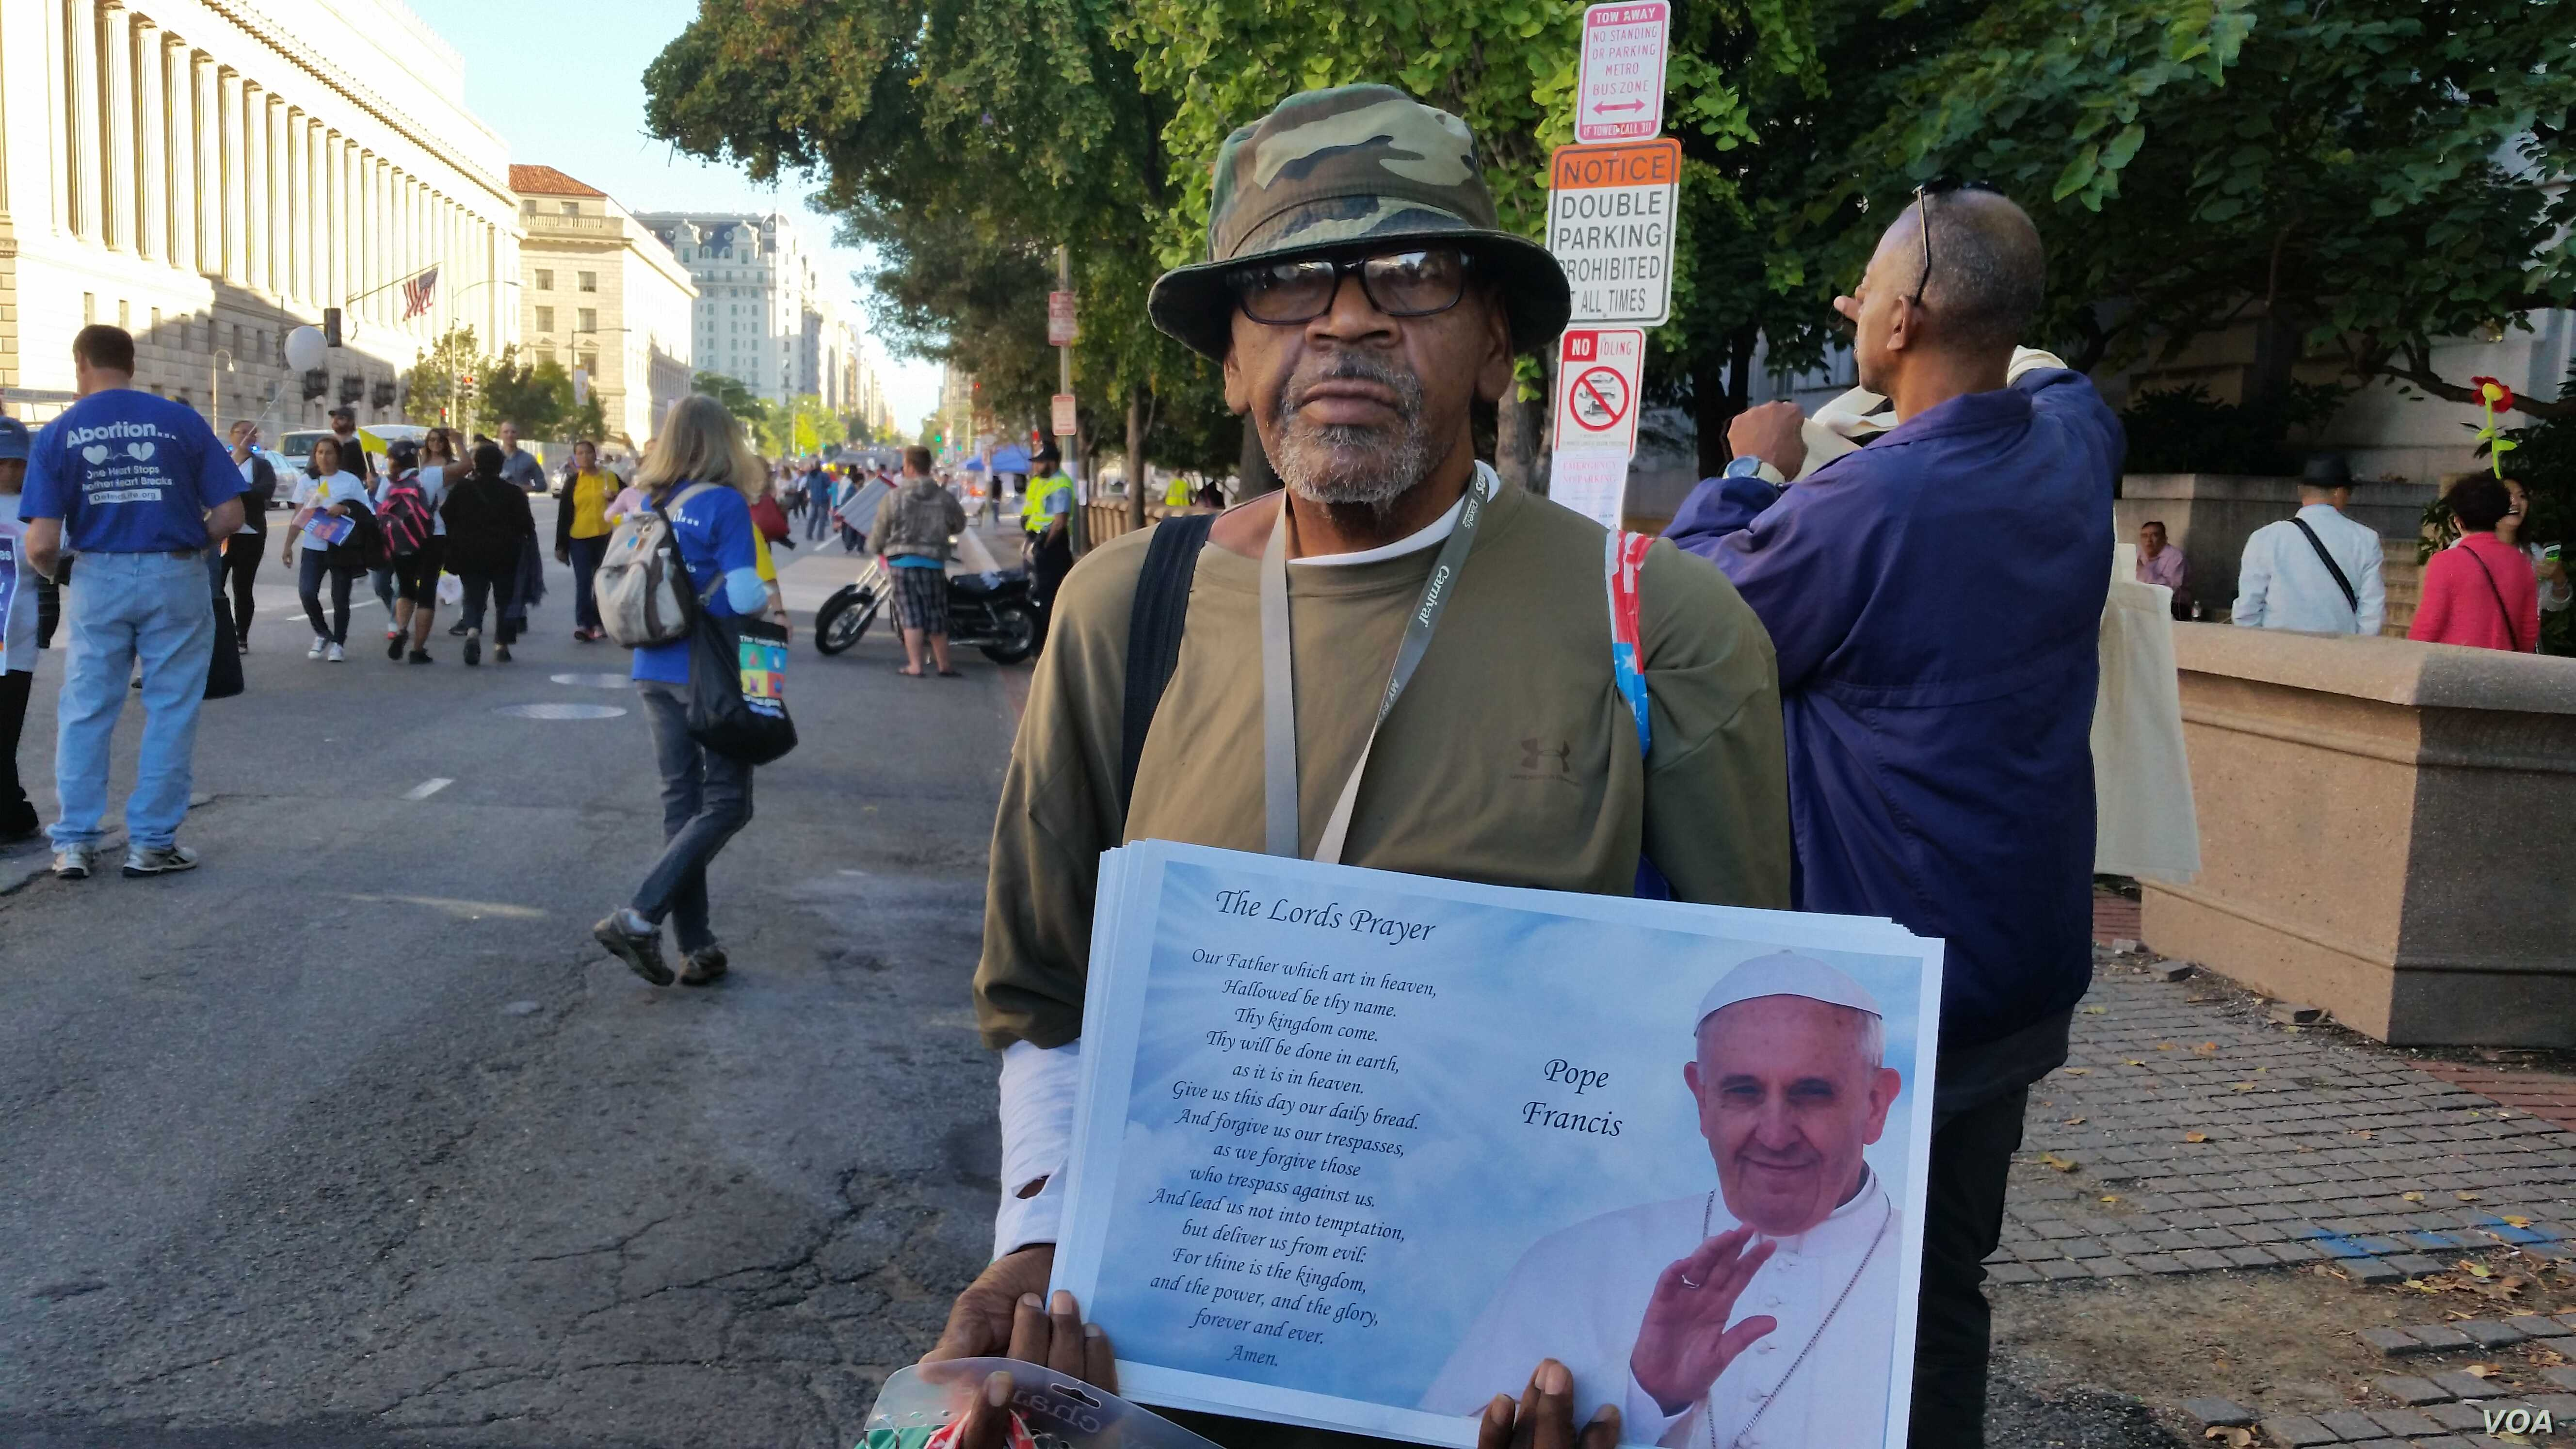 A vendor sells souvenirs during the pope's visit to Washington, Sept. 23, 2015 (R. Green/VOA)